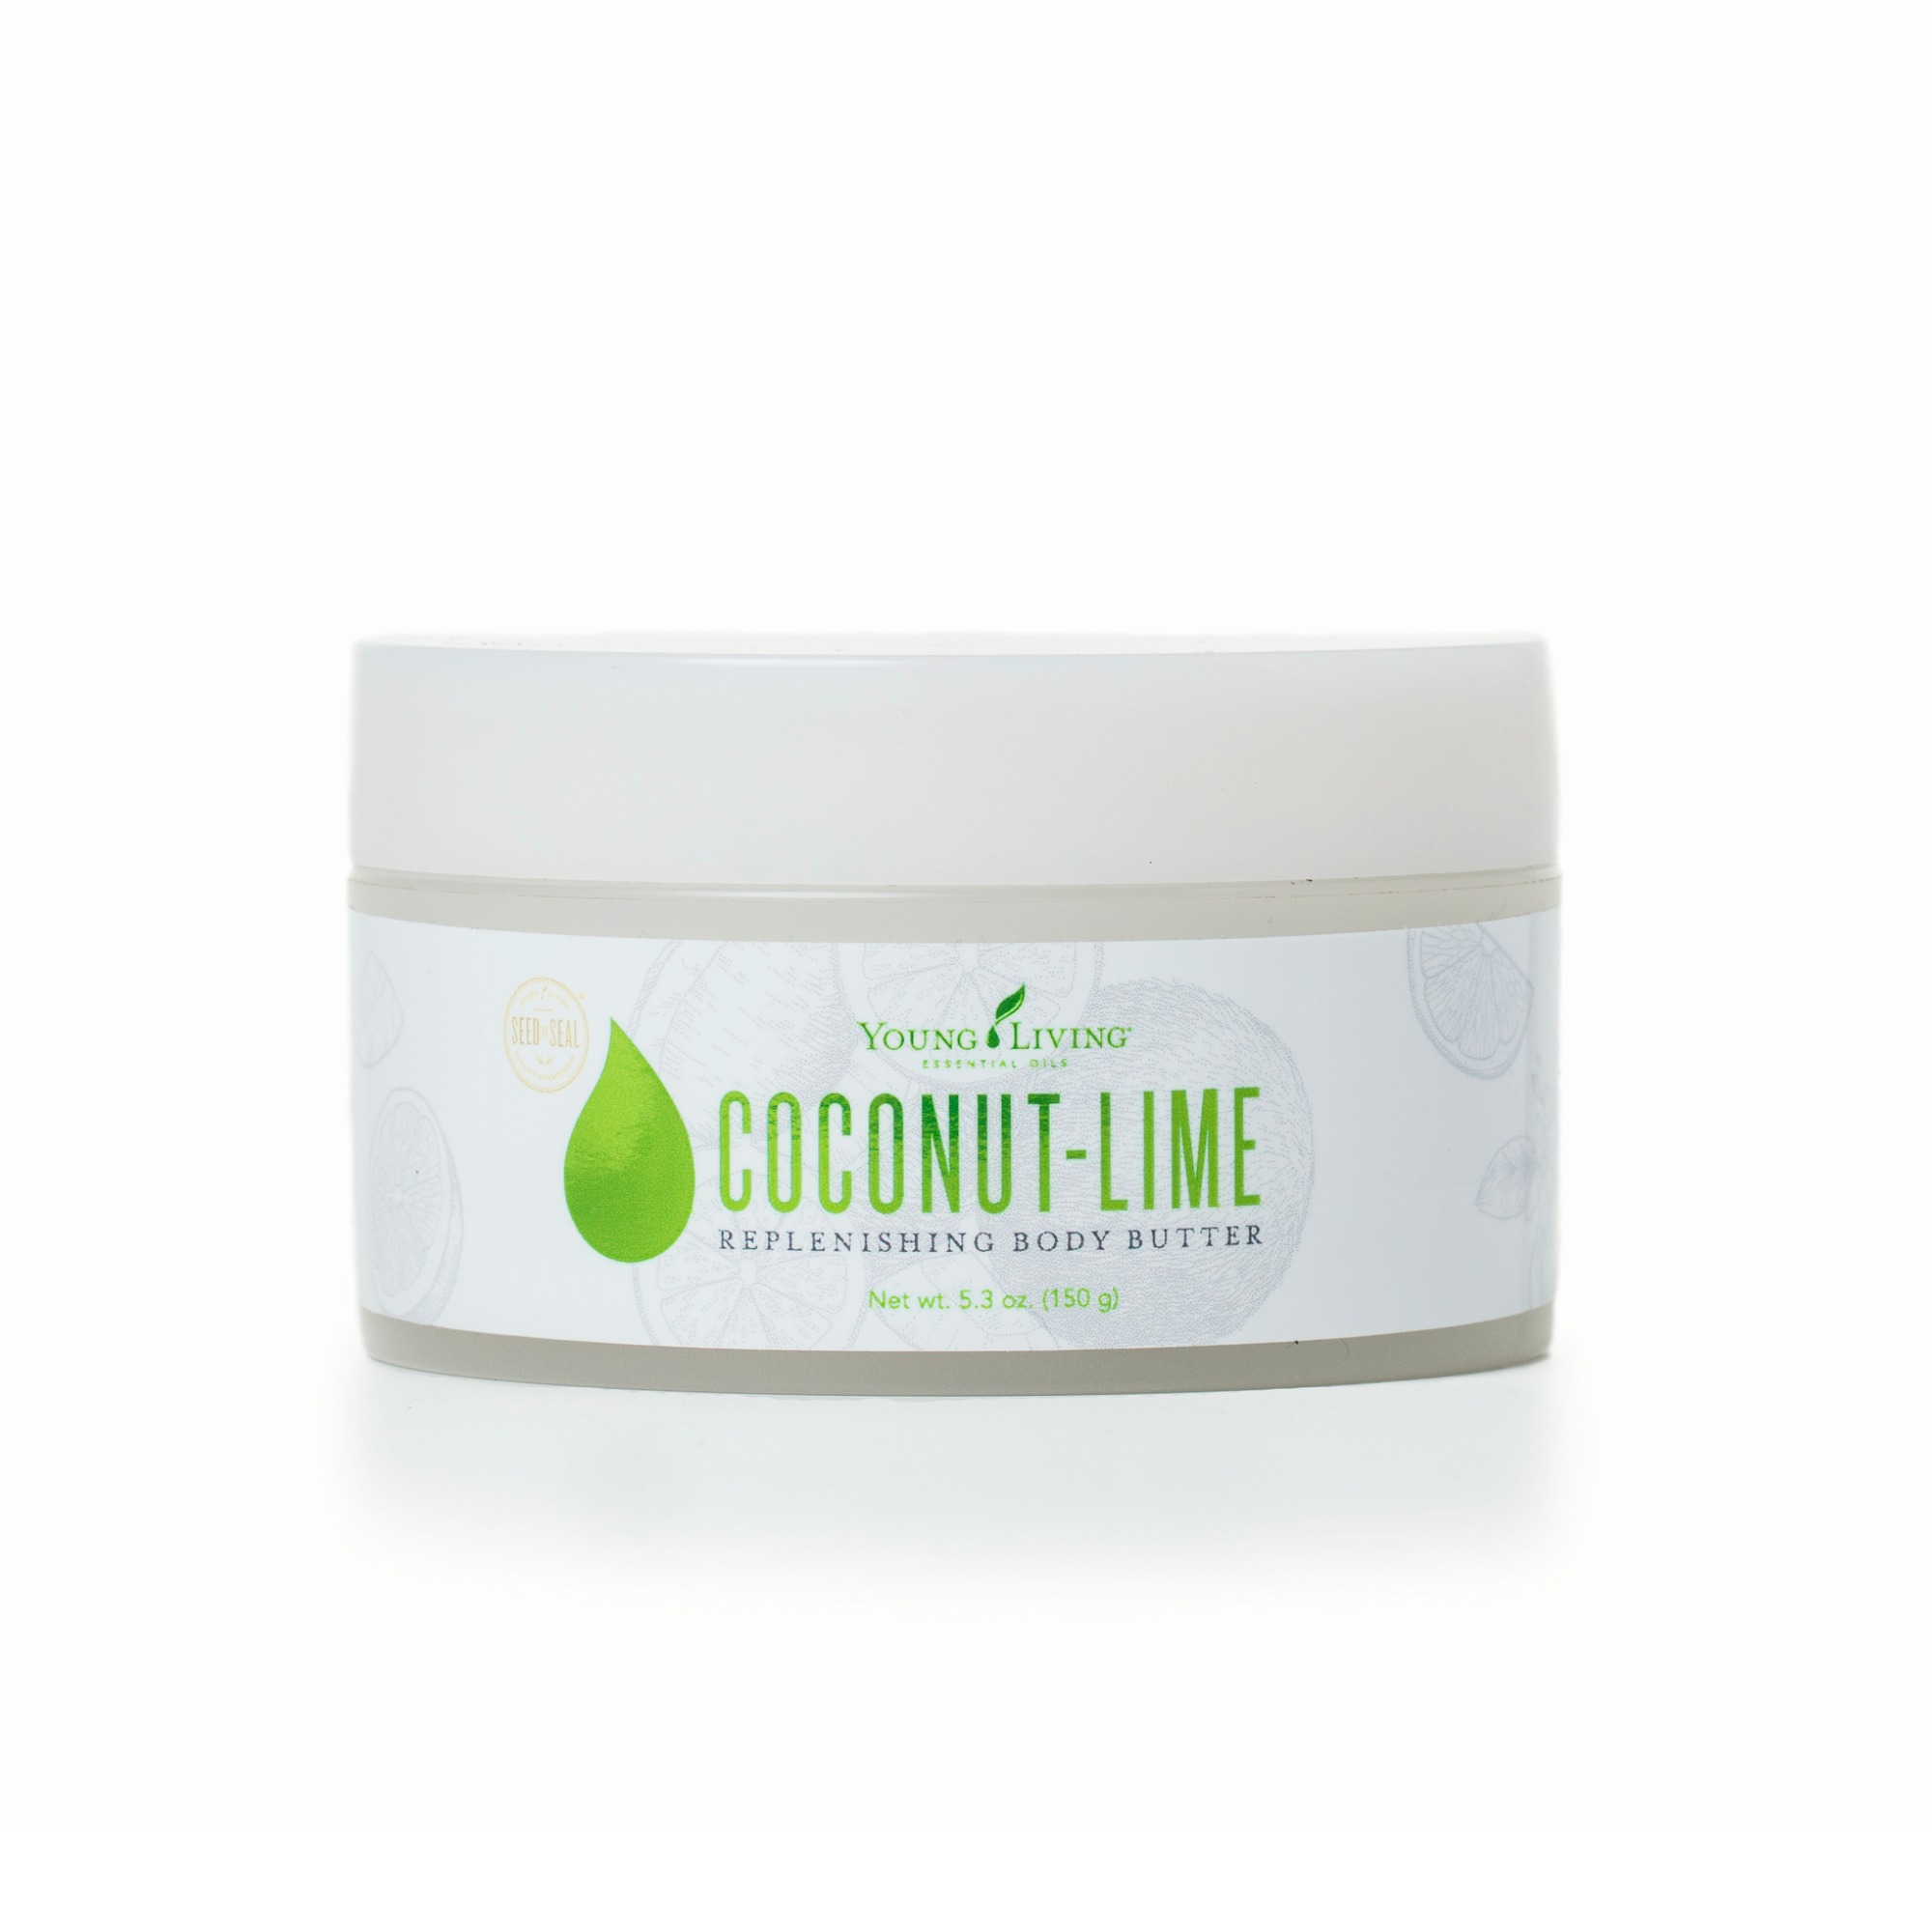 COCONUT LIME BODY BUTTER    Young Living's Coconut-Lime Replenishing Body Butter uses mango and cupuacu butters and no added water to give your skin a luxurious, smooth feel. With its intense, natural moisturizing properties, it keeps your skin hydrated and soft all day long, while coconut oil and citrus essential oils leave your skin with a fresh, tropical scent.   Click here   to learn more about this product.